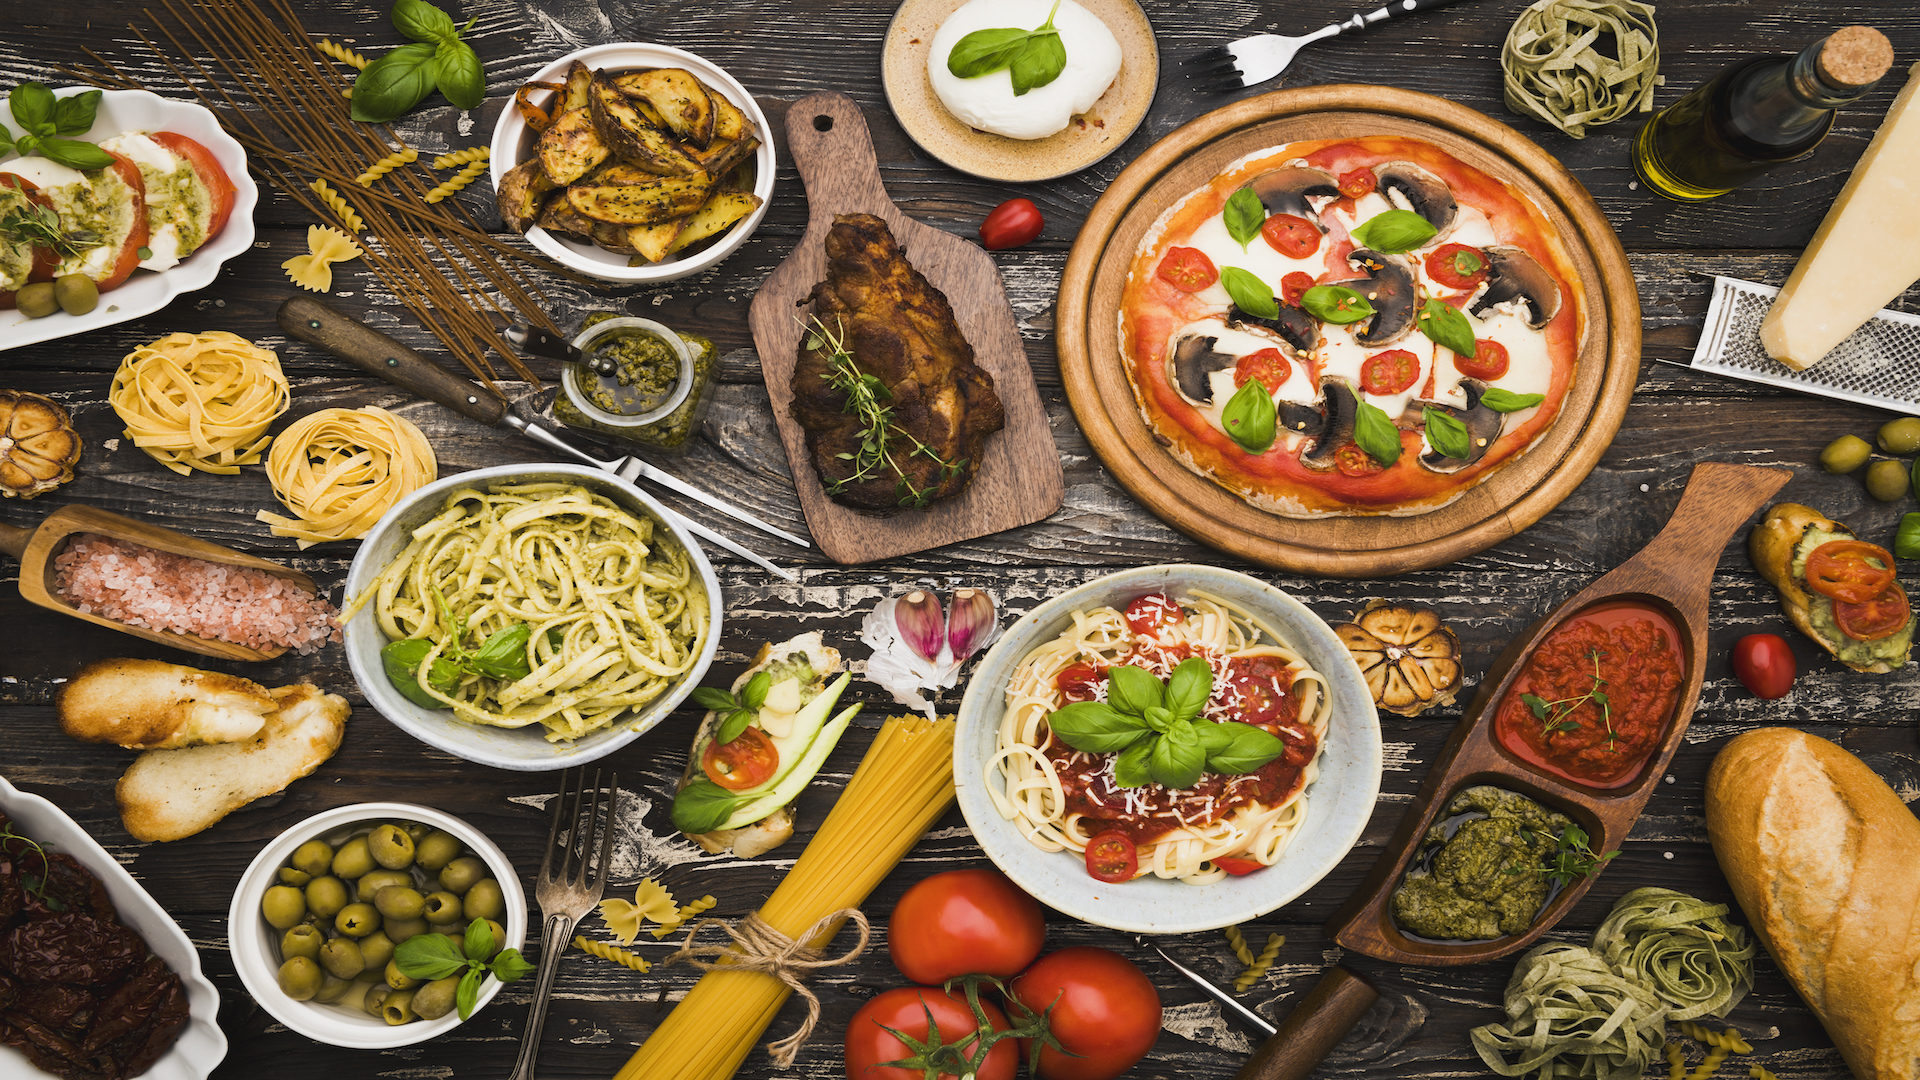 Top 10 Foods to Eat on Your Trip to Italy